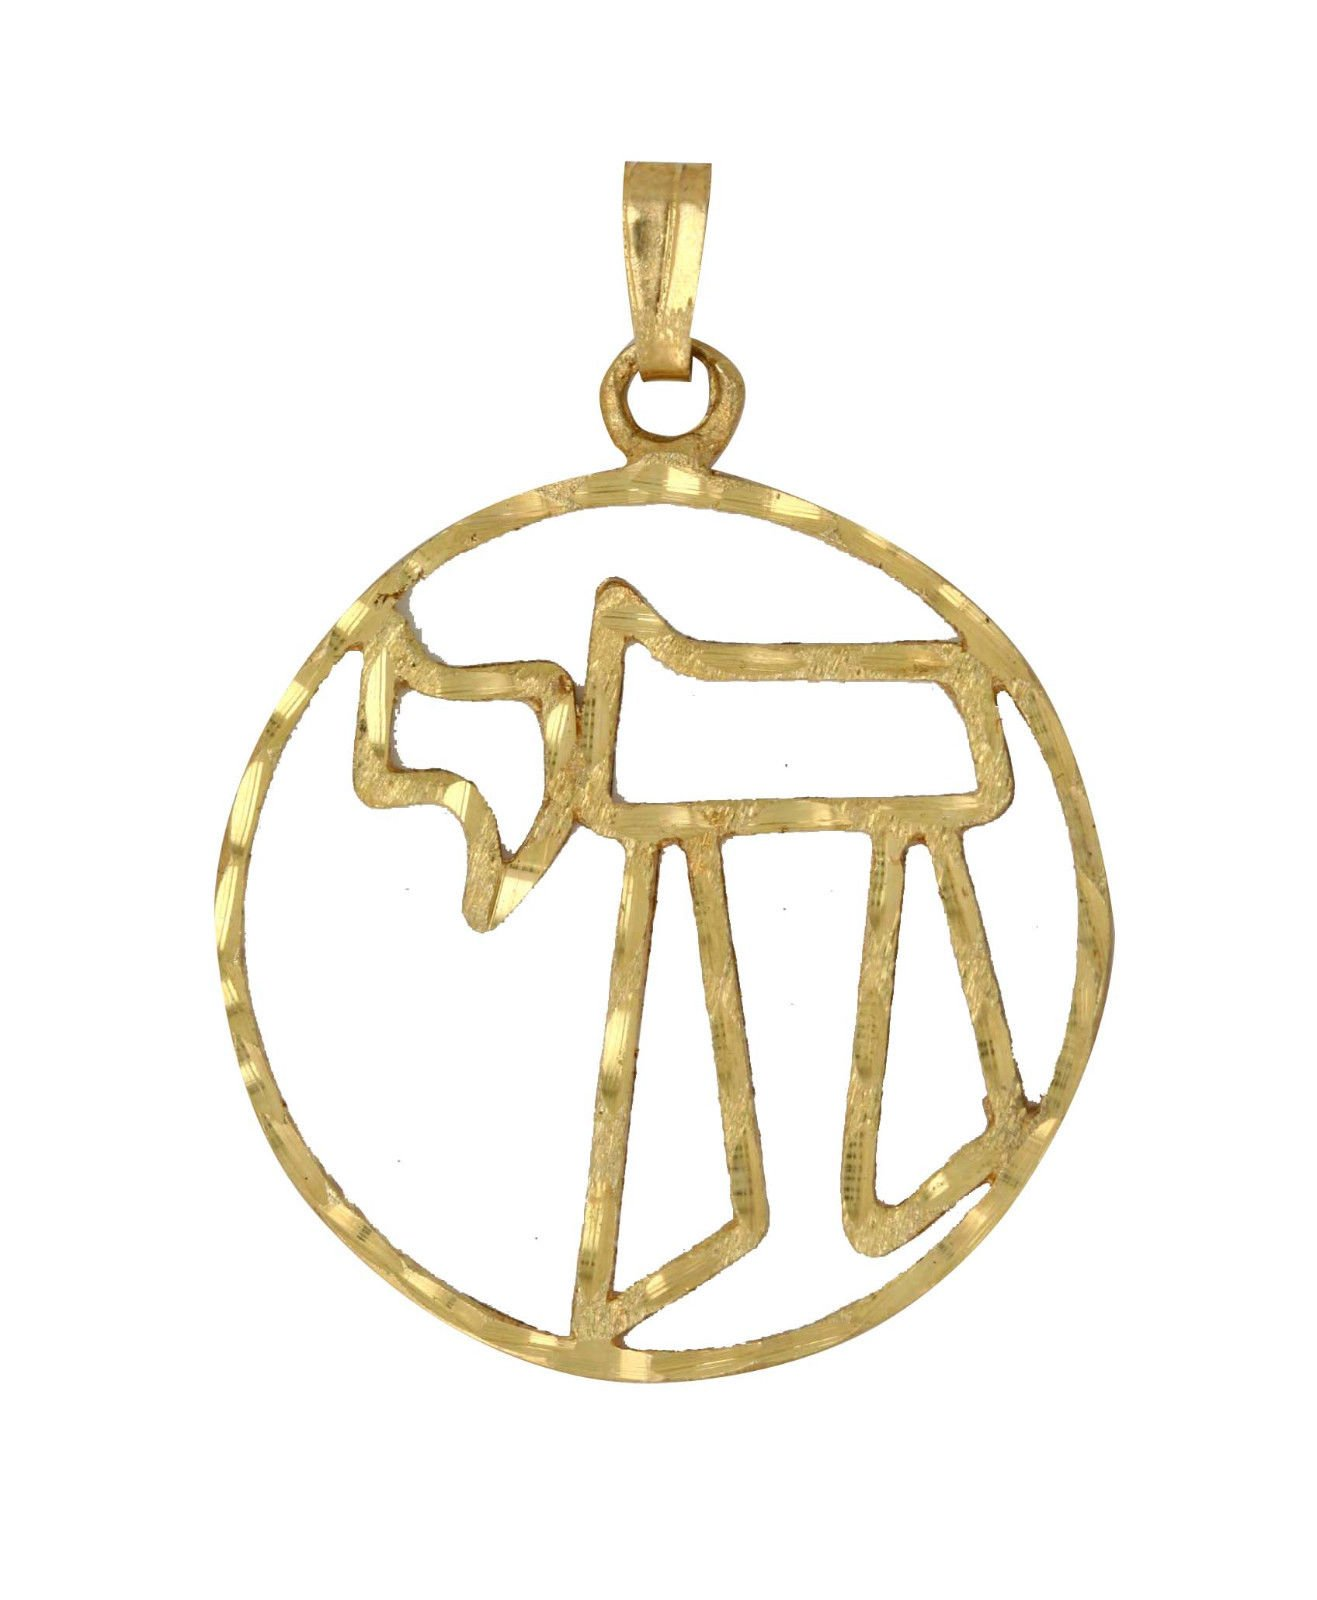 Jewish Jewelry 14K Gold ''Chai'' In Hebrew Cut Out Pendant 1'' Diameter, 2.1 grams. Great Gift For: Bar Mitzvah Bat Mitzvah Rosh Hashanah Chanukah Wedding Shabbat Seder Night Passover Purim and Other Jewish Holiday